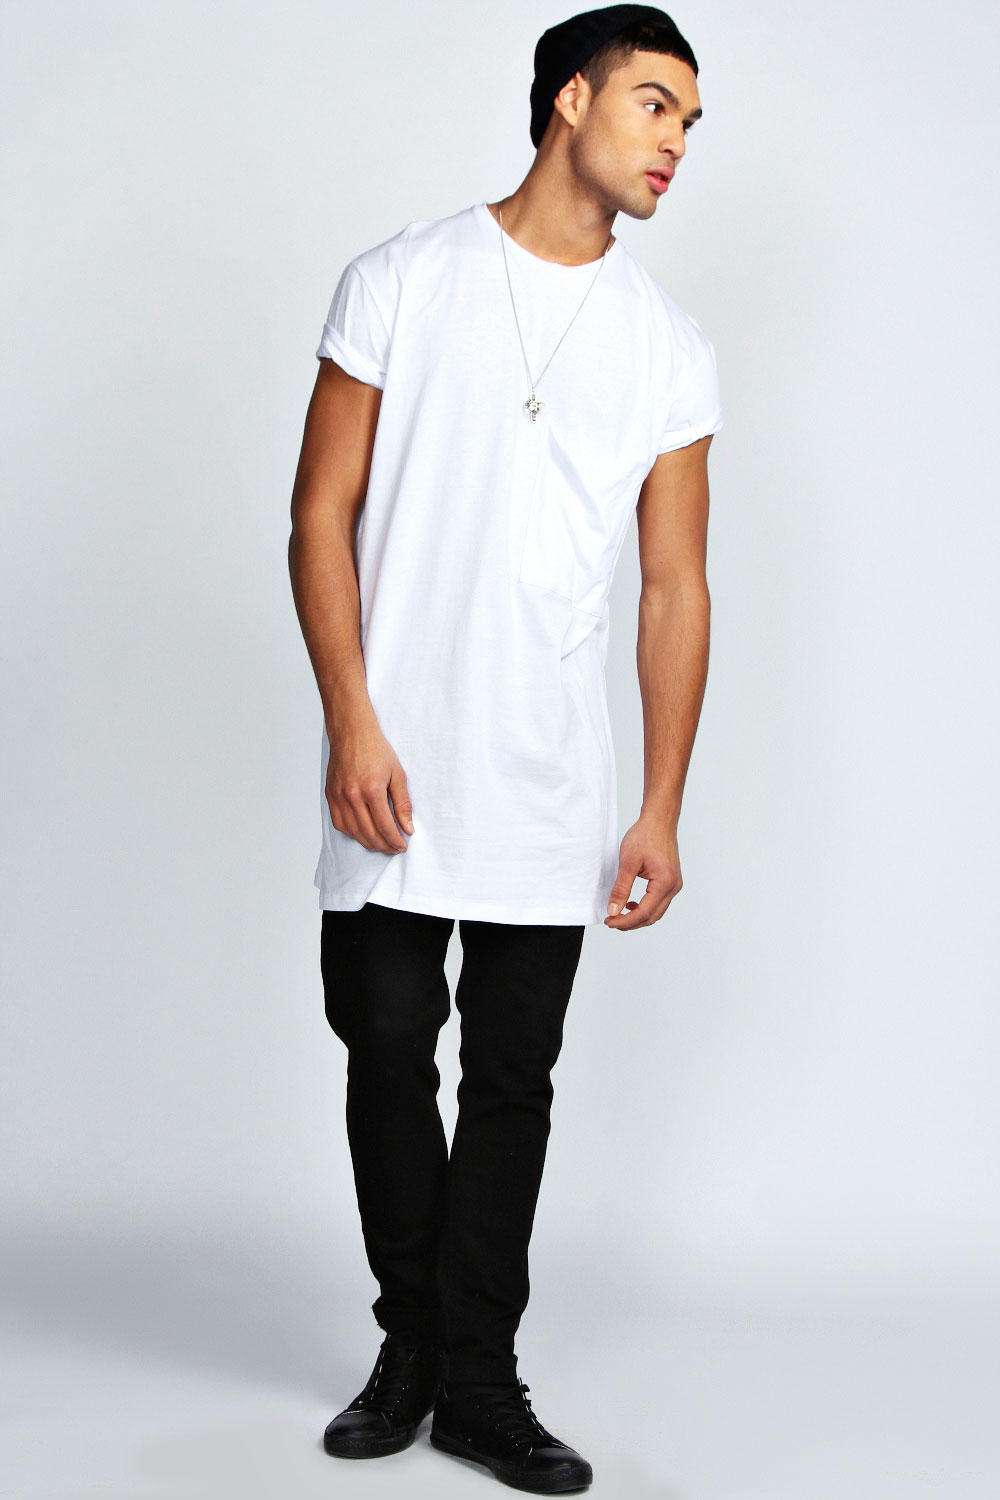 Discover long t shirts with ASOS. From men's long hoodies, printed tees, long sleeve t shirts and crew neck sweatshirts for men. Shop today from ASOS.